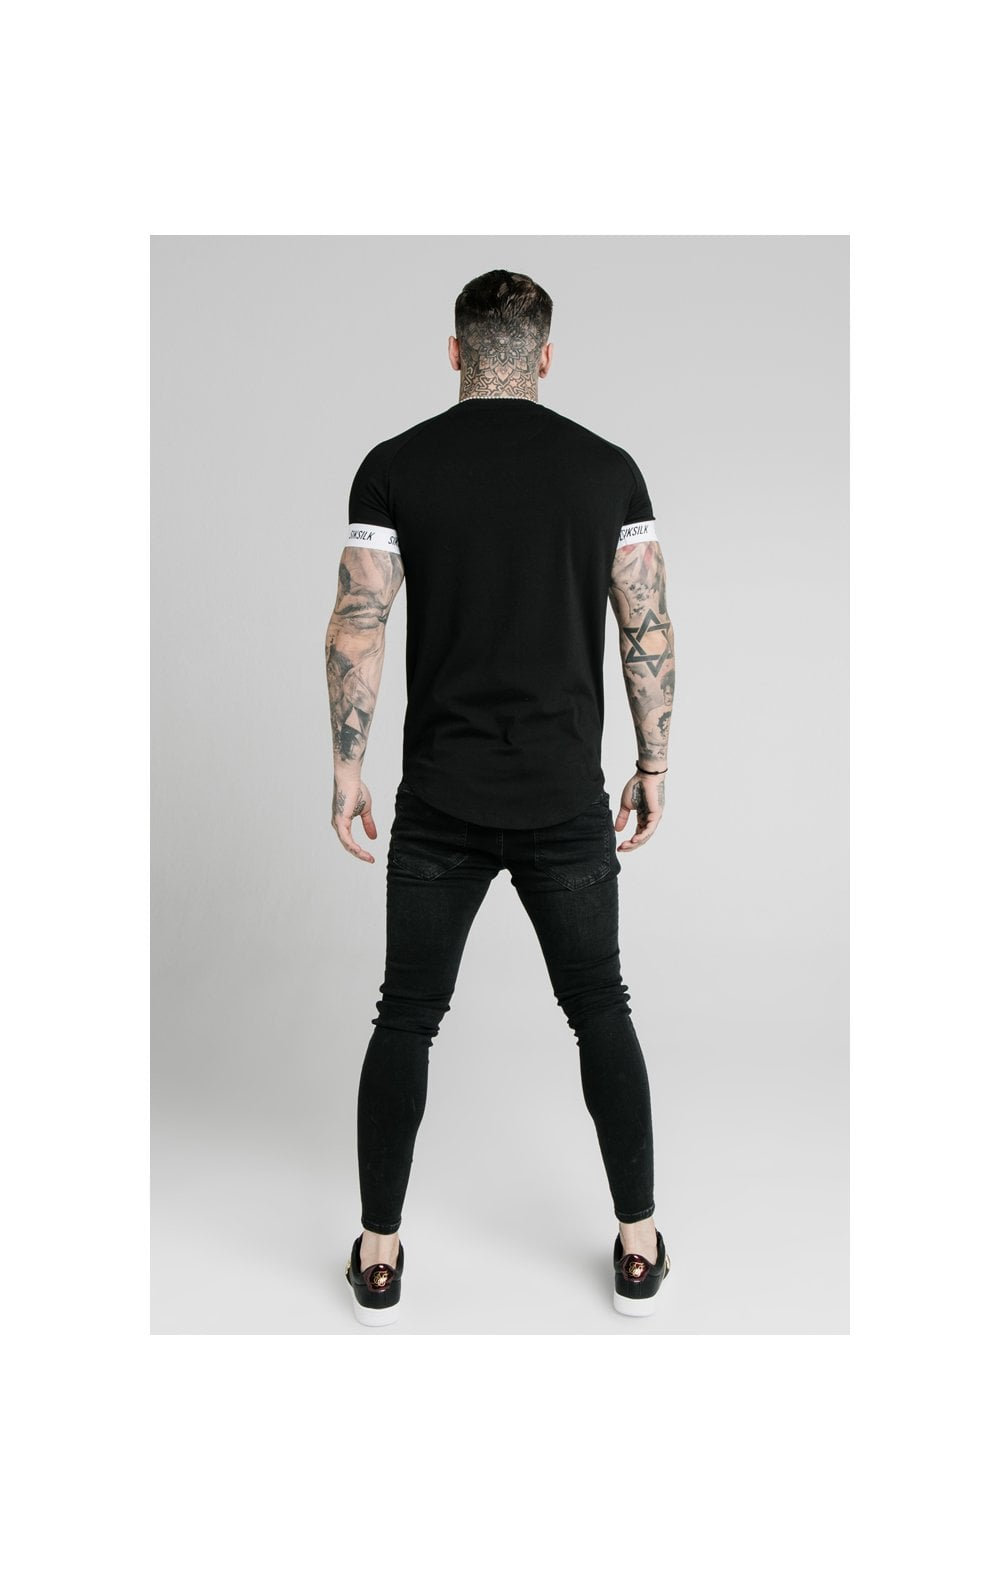 SikSilk S/S Raglan Tech Tee - Black (5)